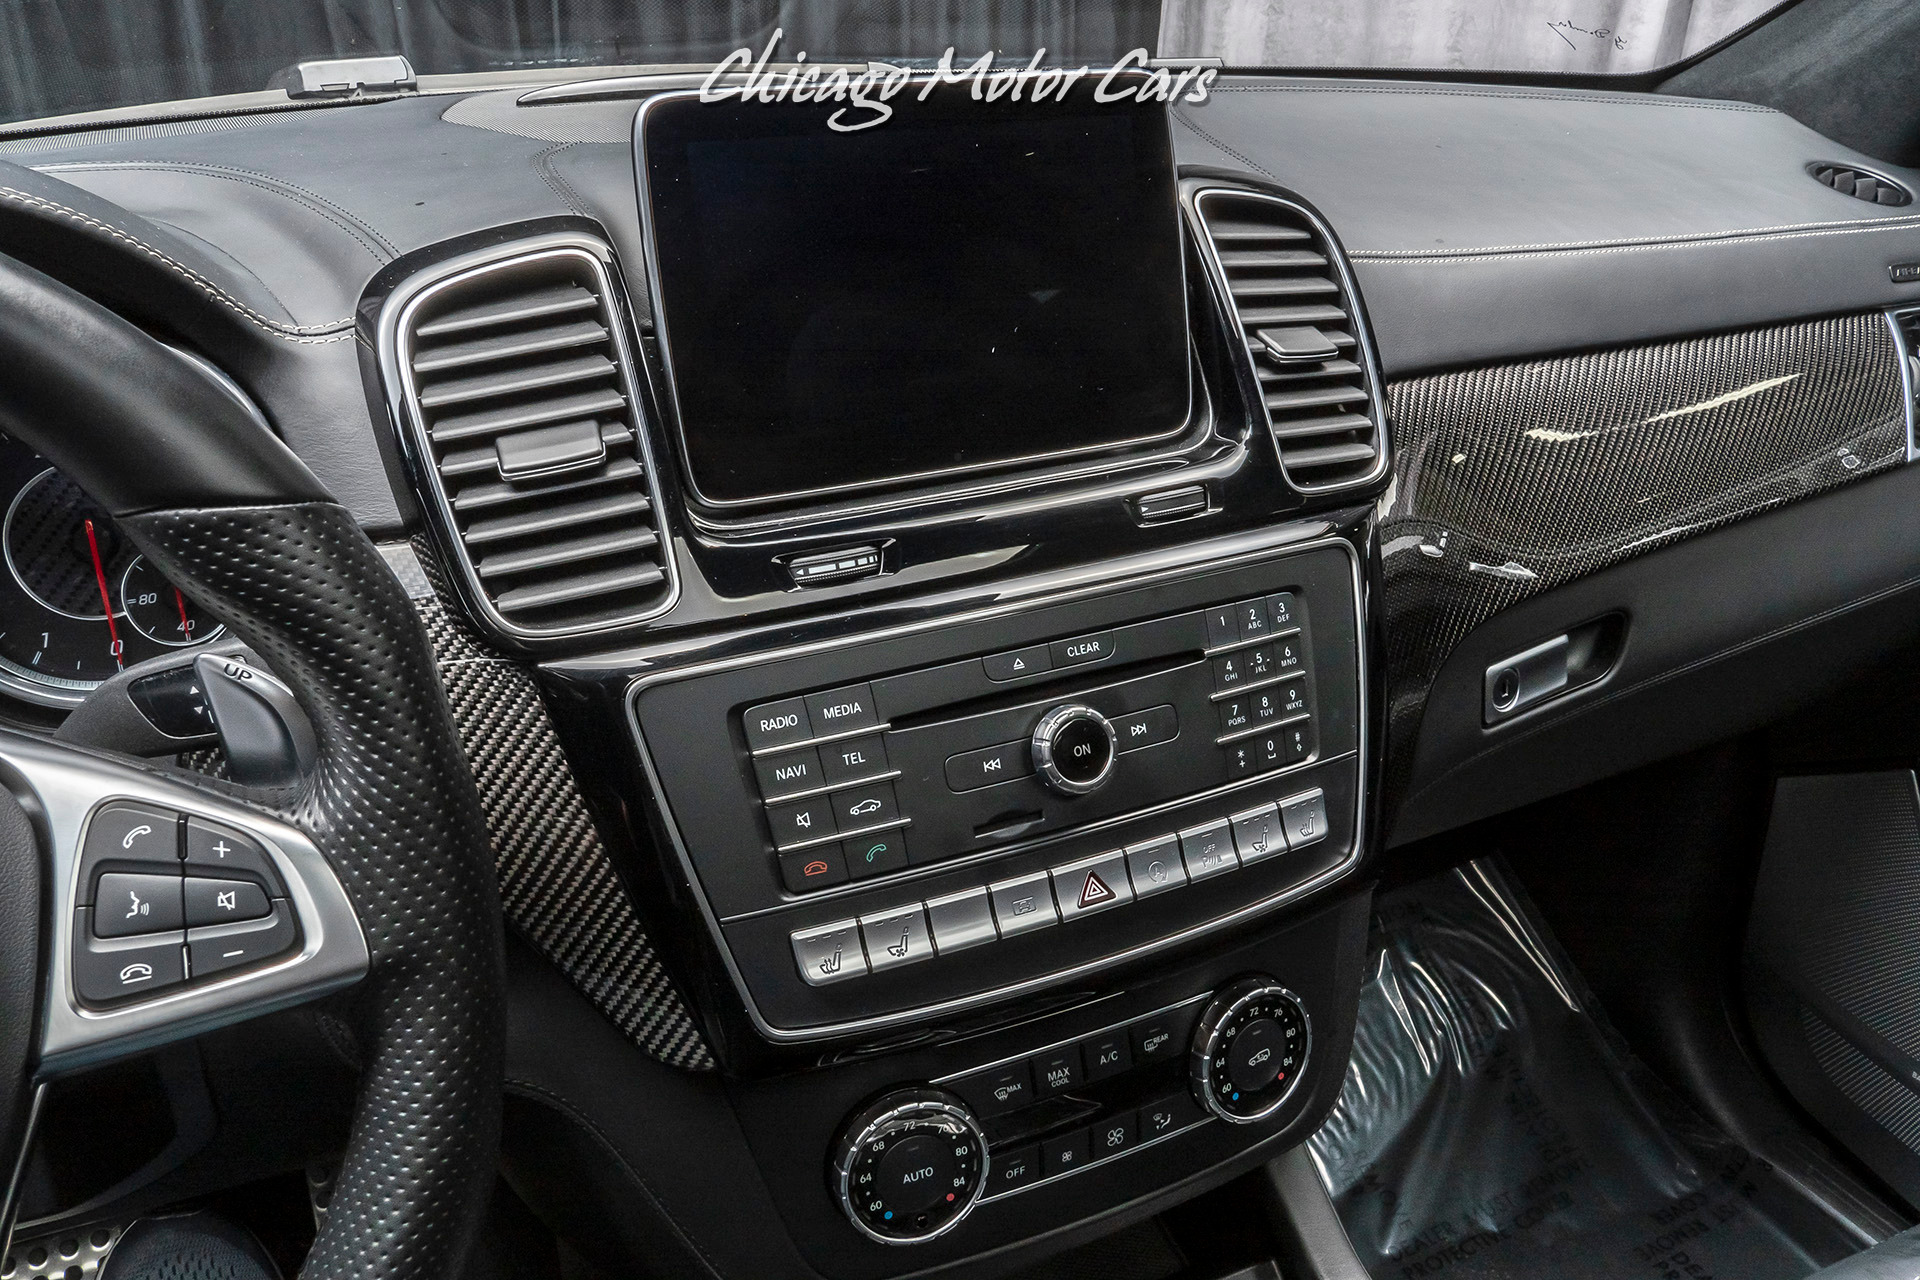 Used 2016 Mercedes-Benz GLE63 AMG SUV BANG & OLUFSEN SOUND SYSTEM